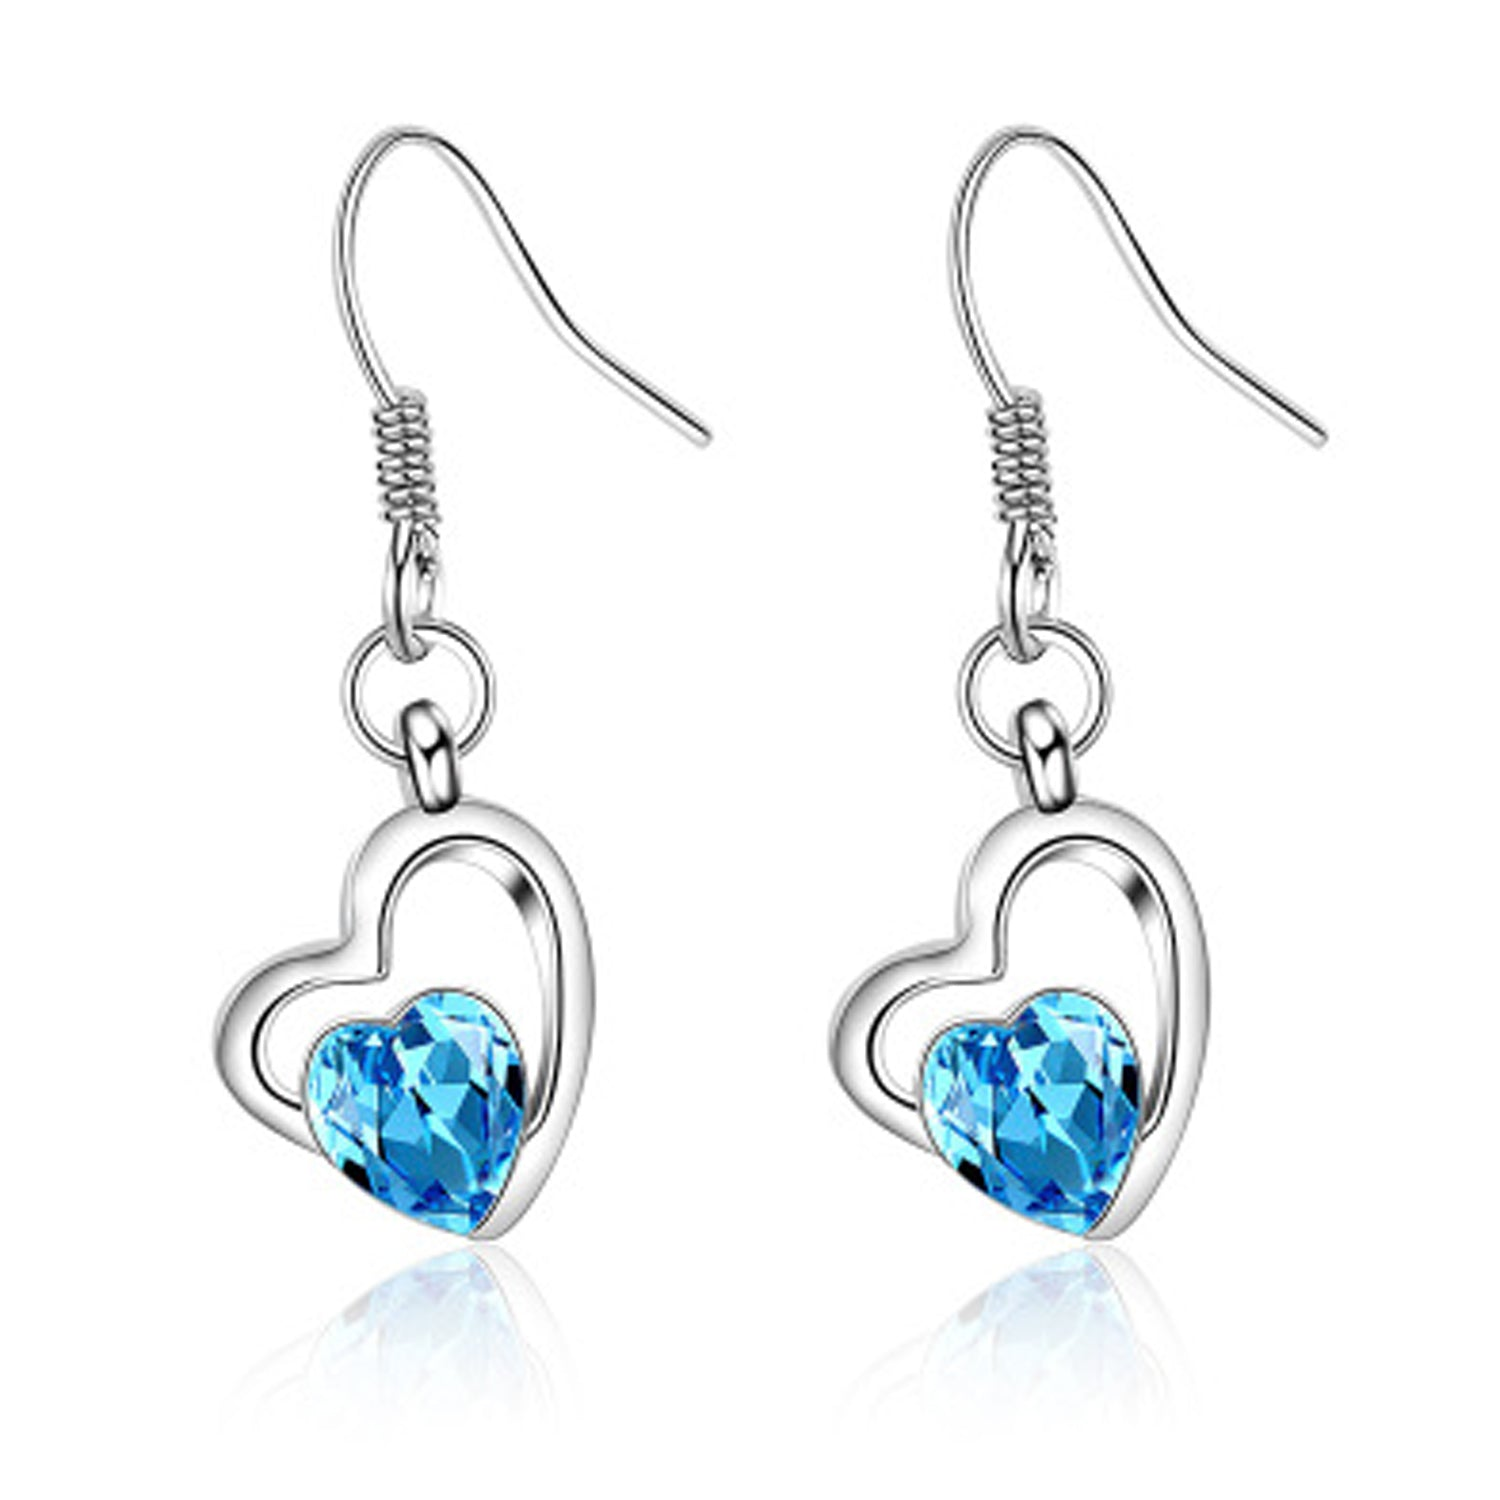 Sukkhi Marvellous Valentine Heart Crystal Rhodium Plated Earring for Women-SUKKHI1-E81078